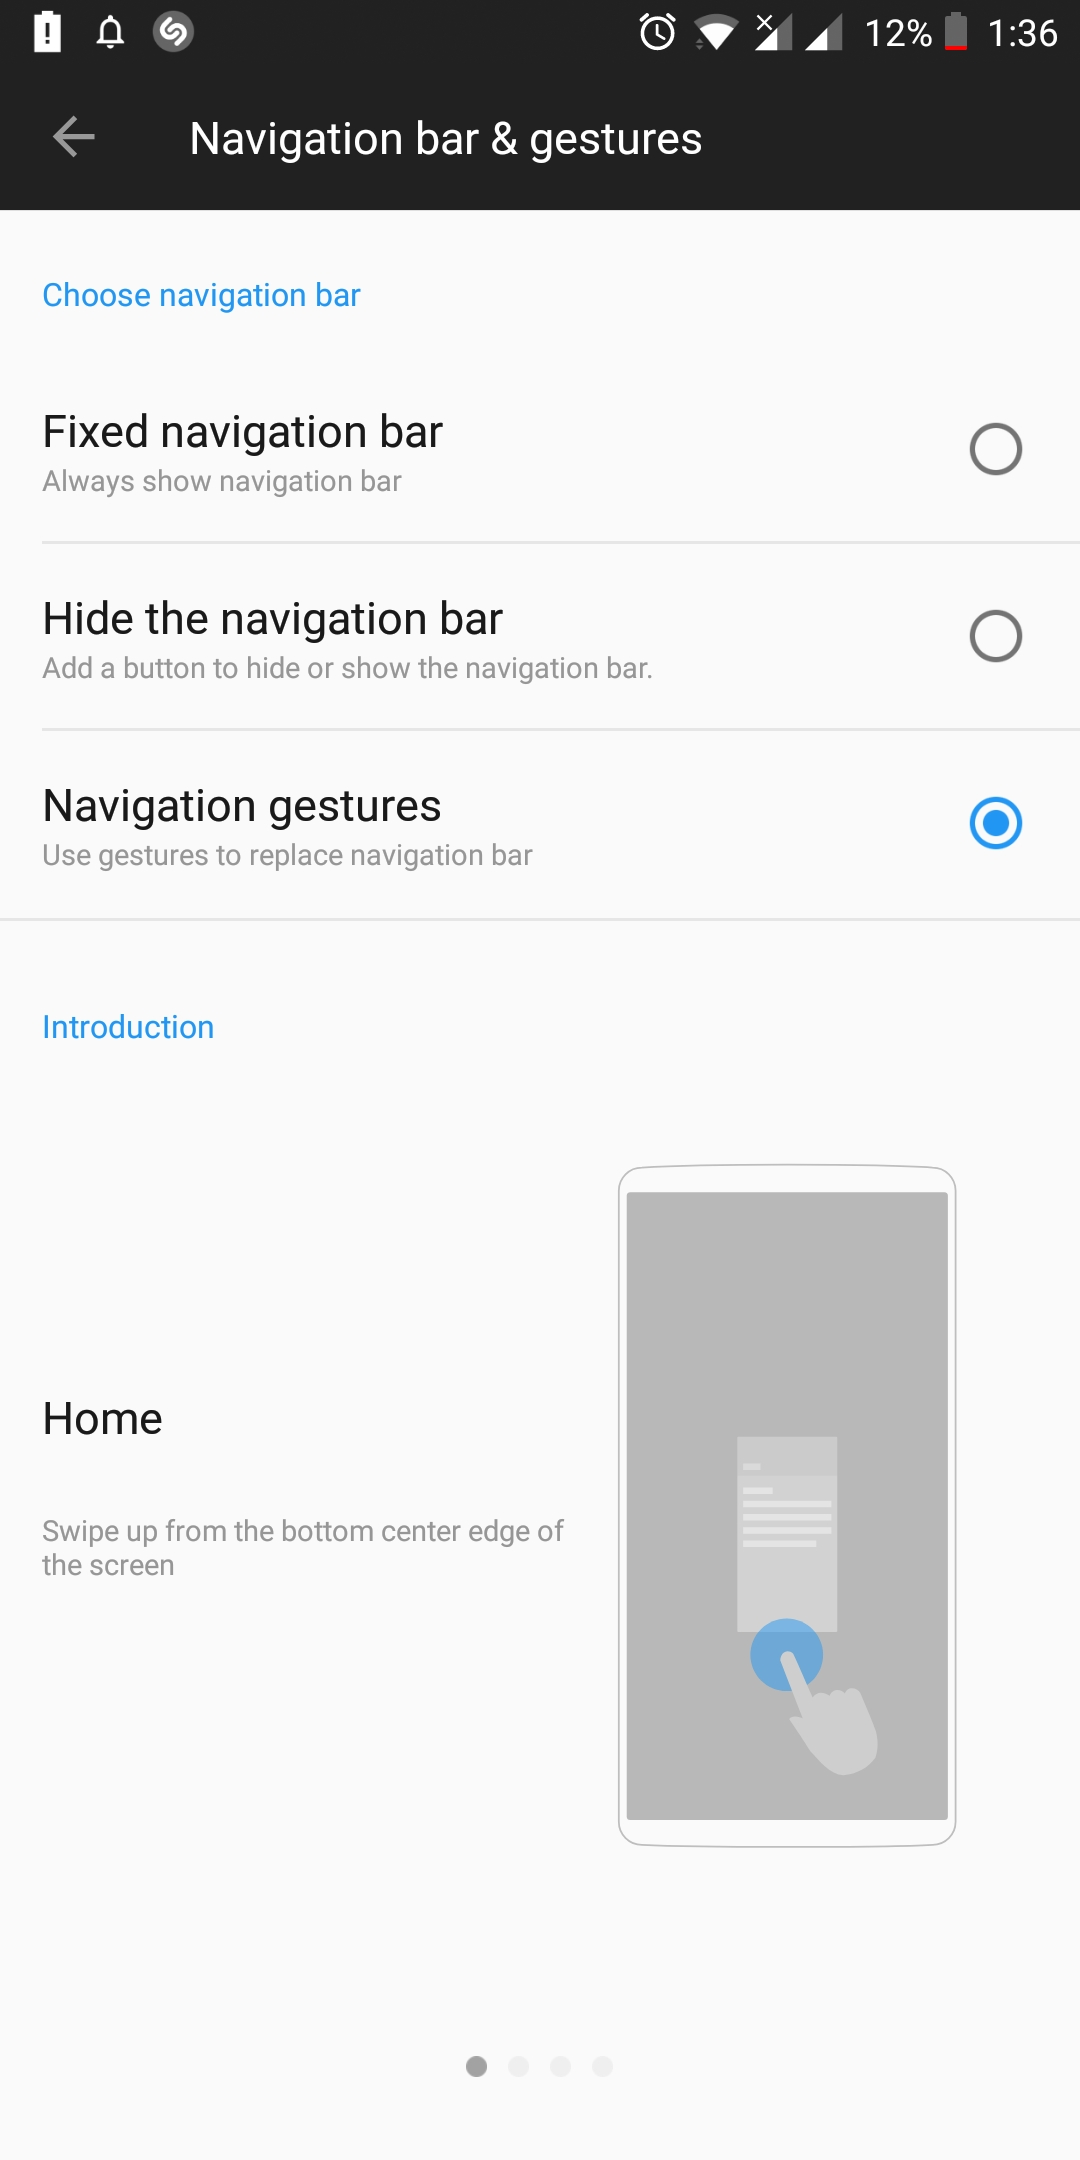 How to Launch Google Assistant on OnePlus 5T/6 with